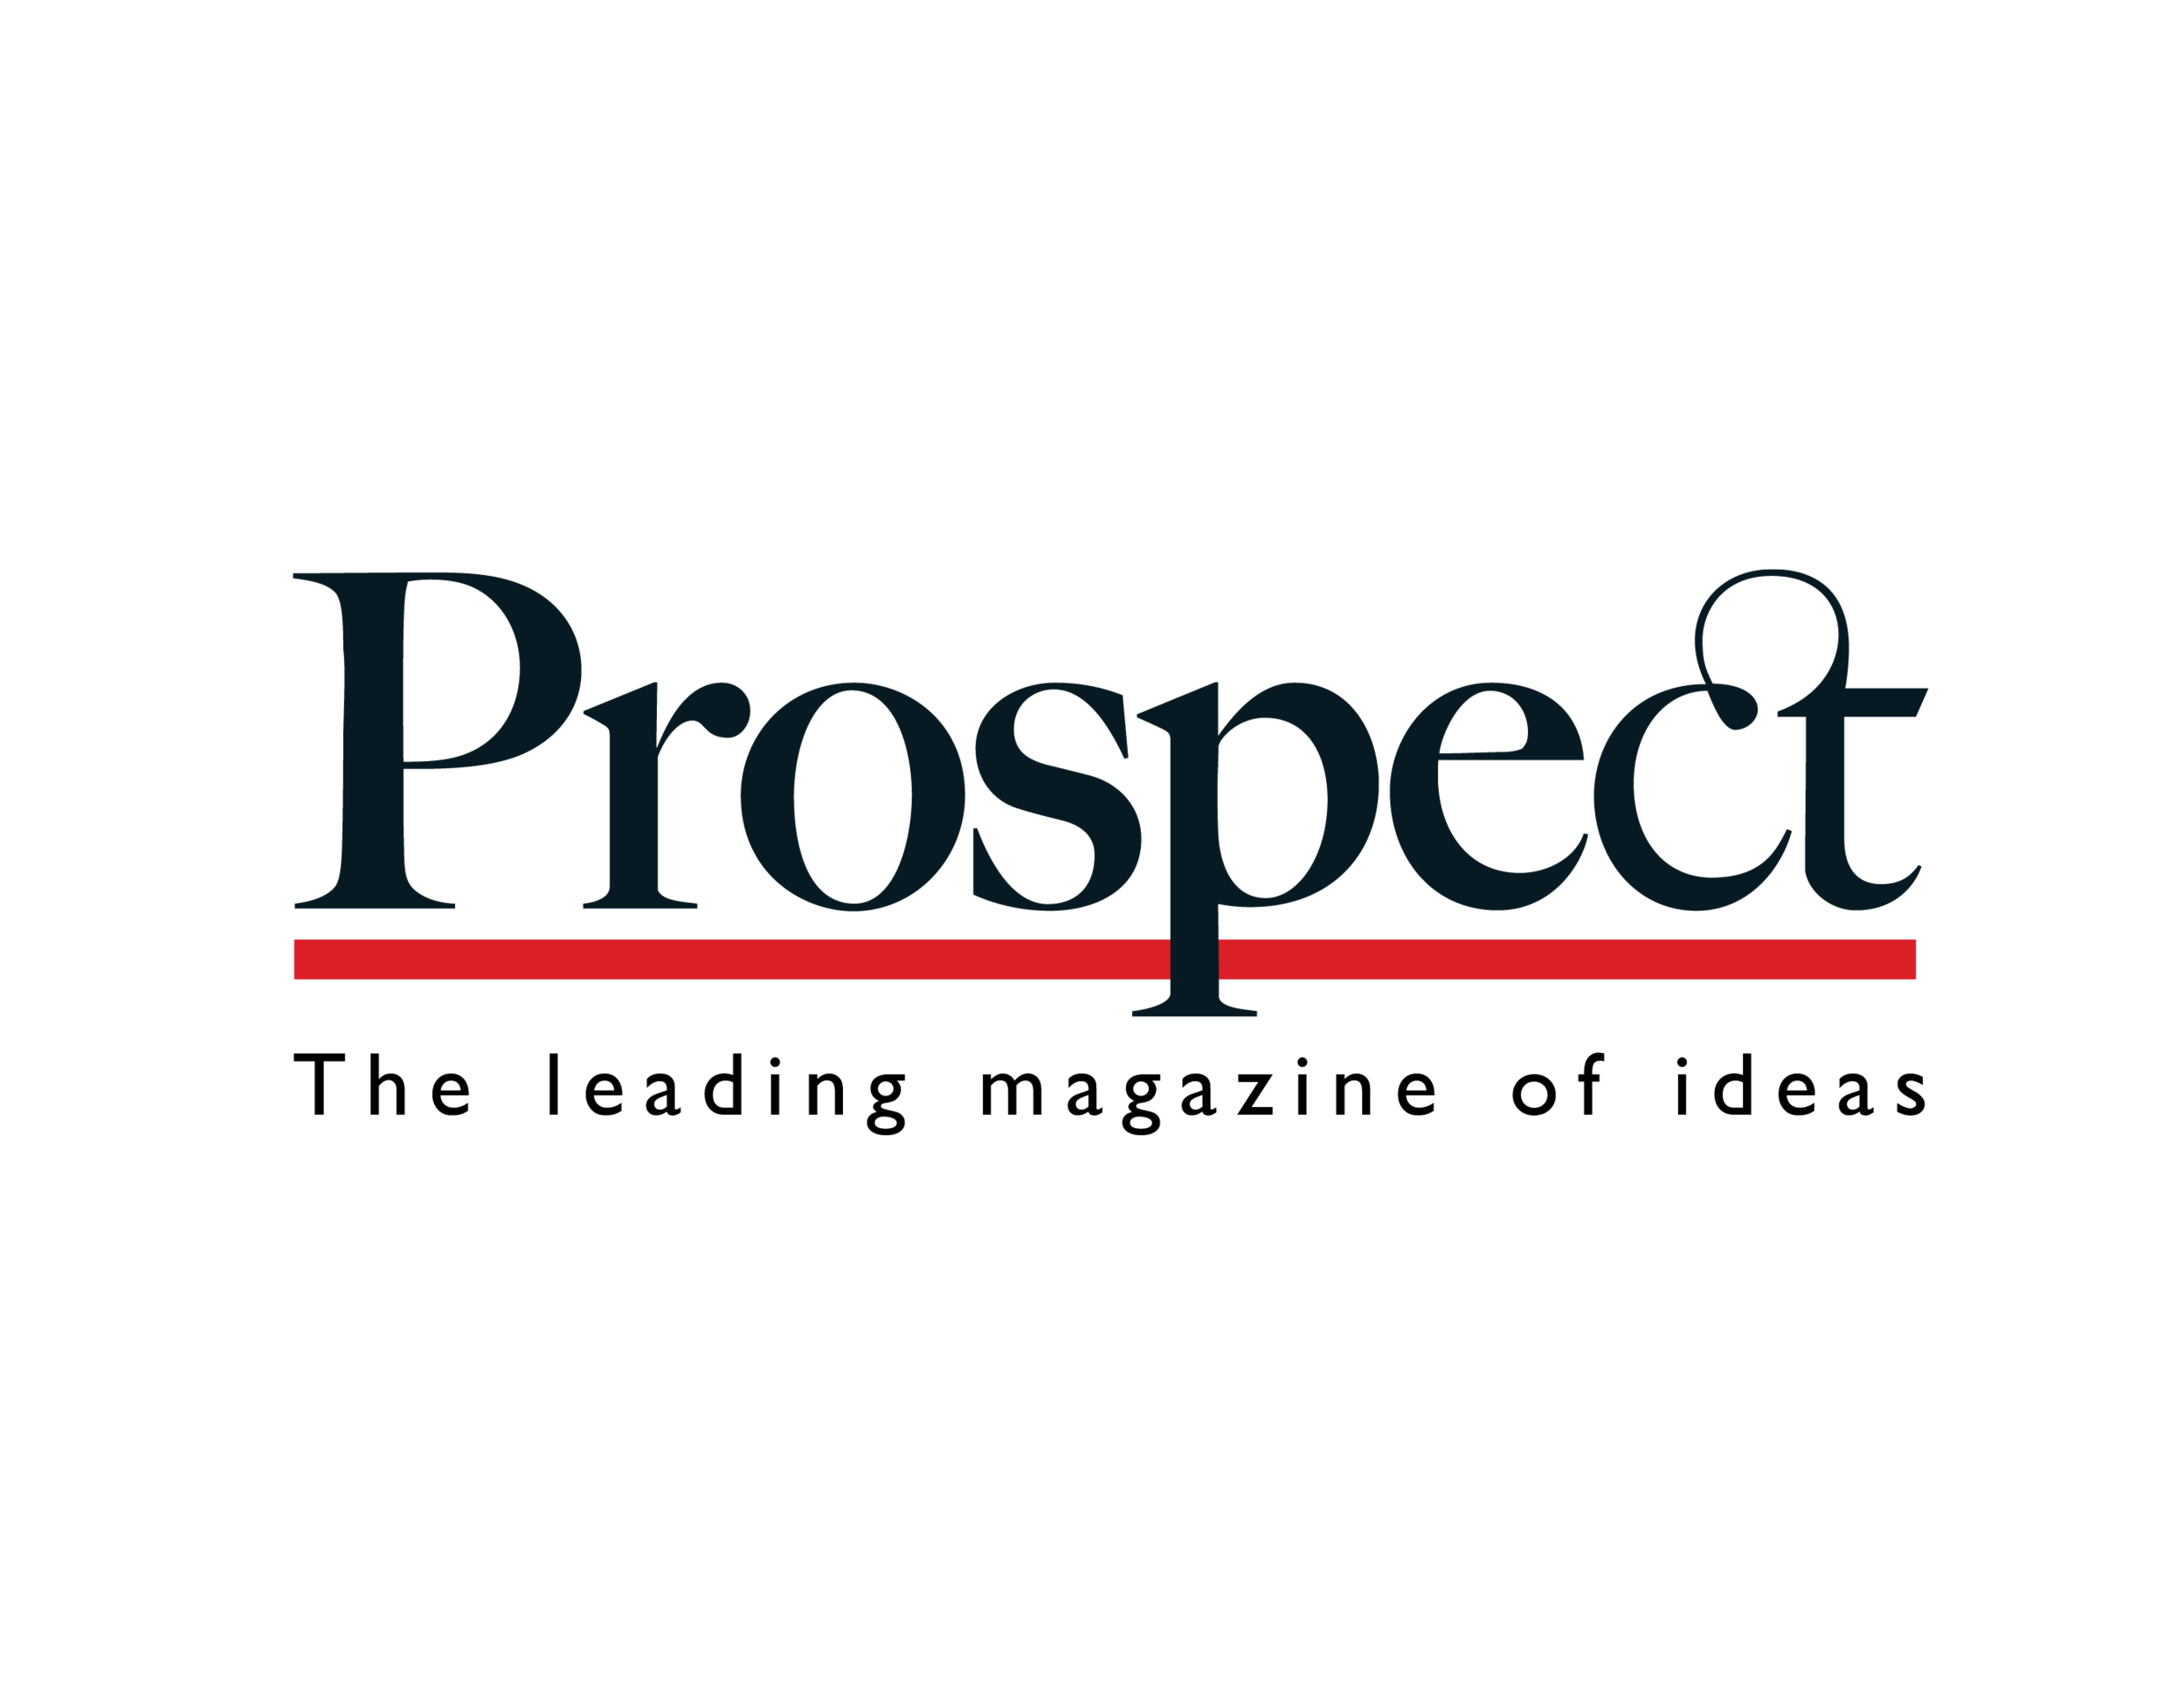 prospect-logo-feature.png